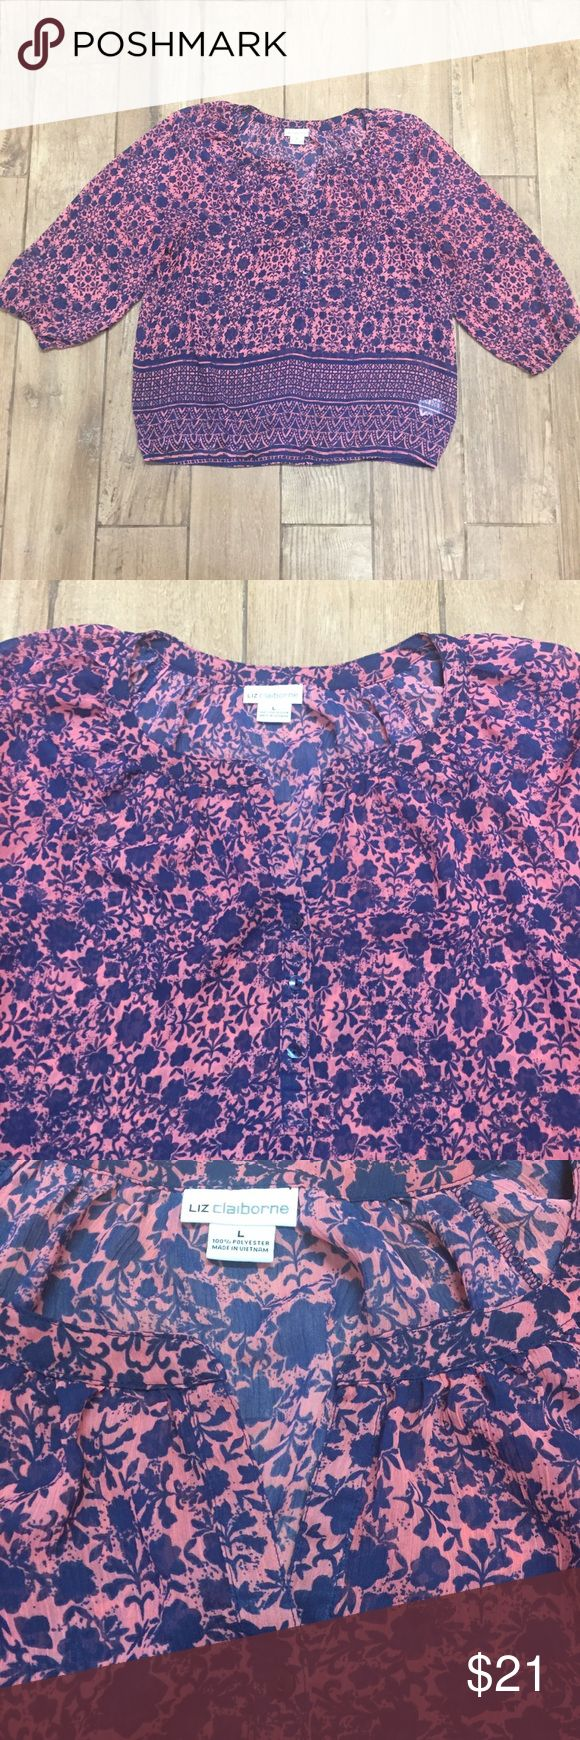 Liz Claiborne Boho Top Liz Claiborne Boho top❤️ In great condition❤️ Size Large❤️ Perfect for spring and summer🌺🌺🌺 Liz Claiborne Tops Blouses